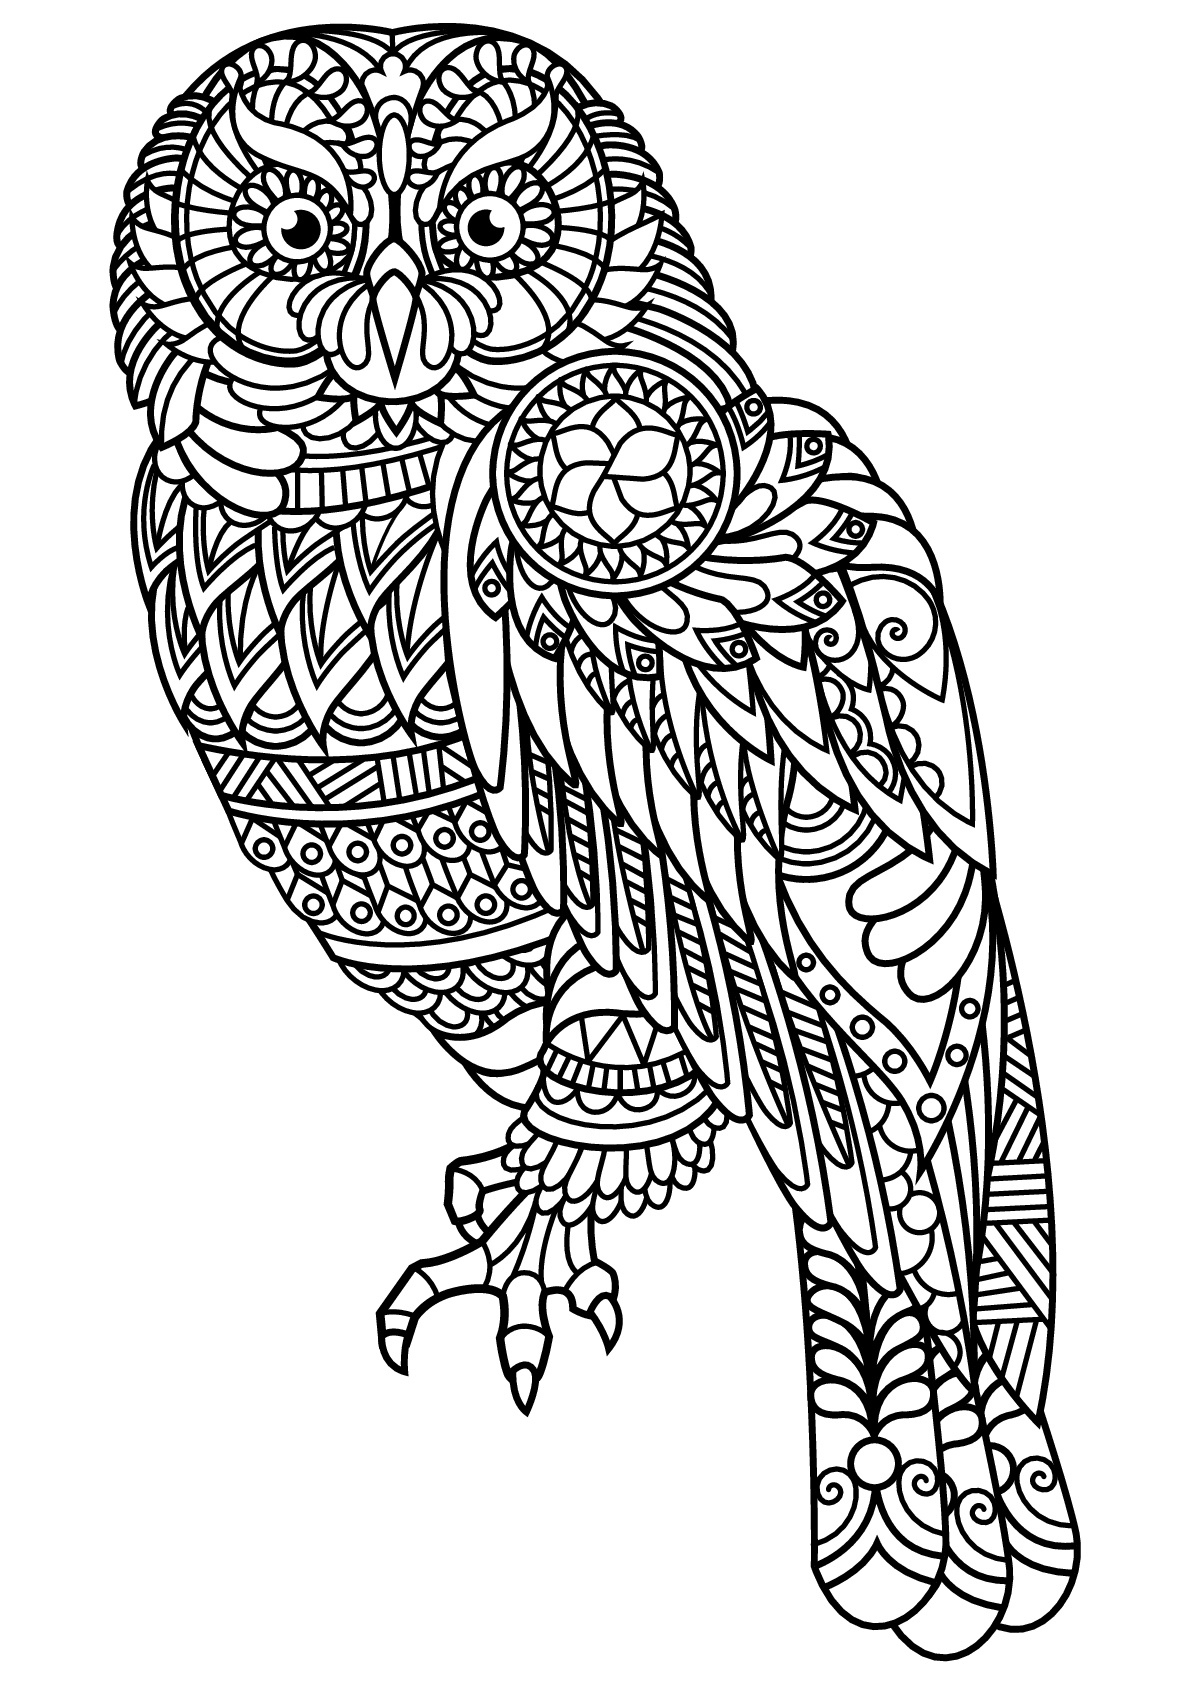 picture of owls to color owls for kids owls kids coloring pages picture to owls of color